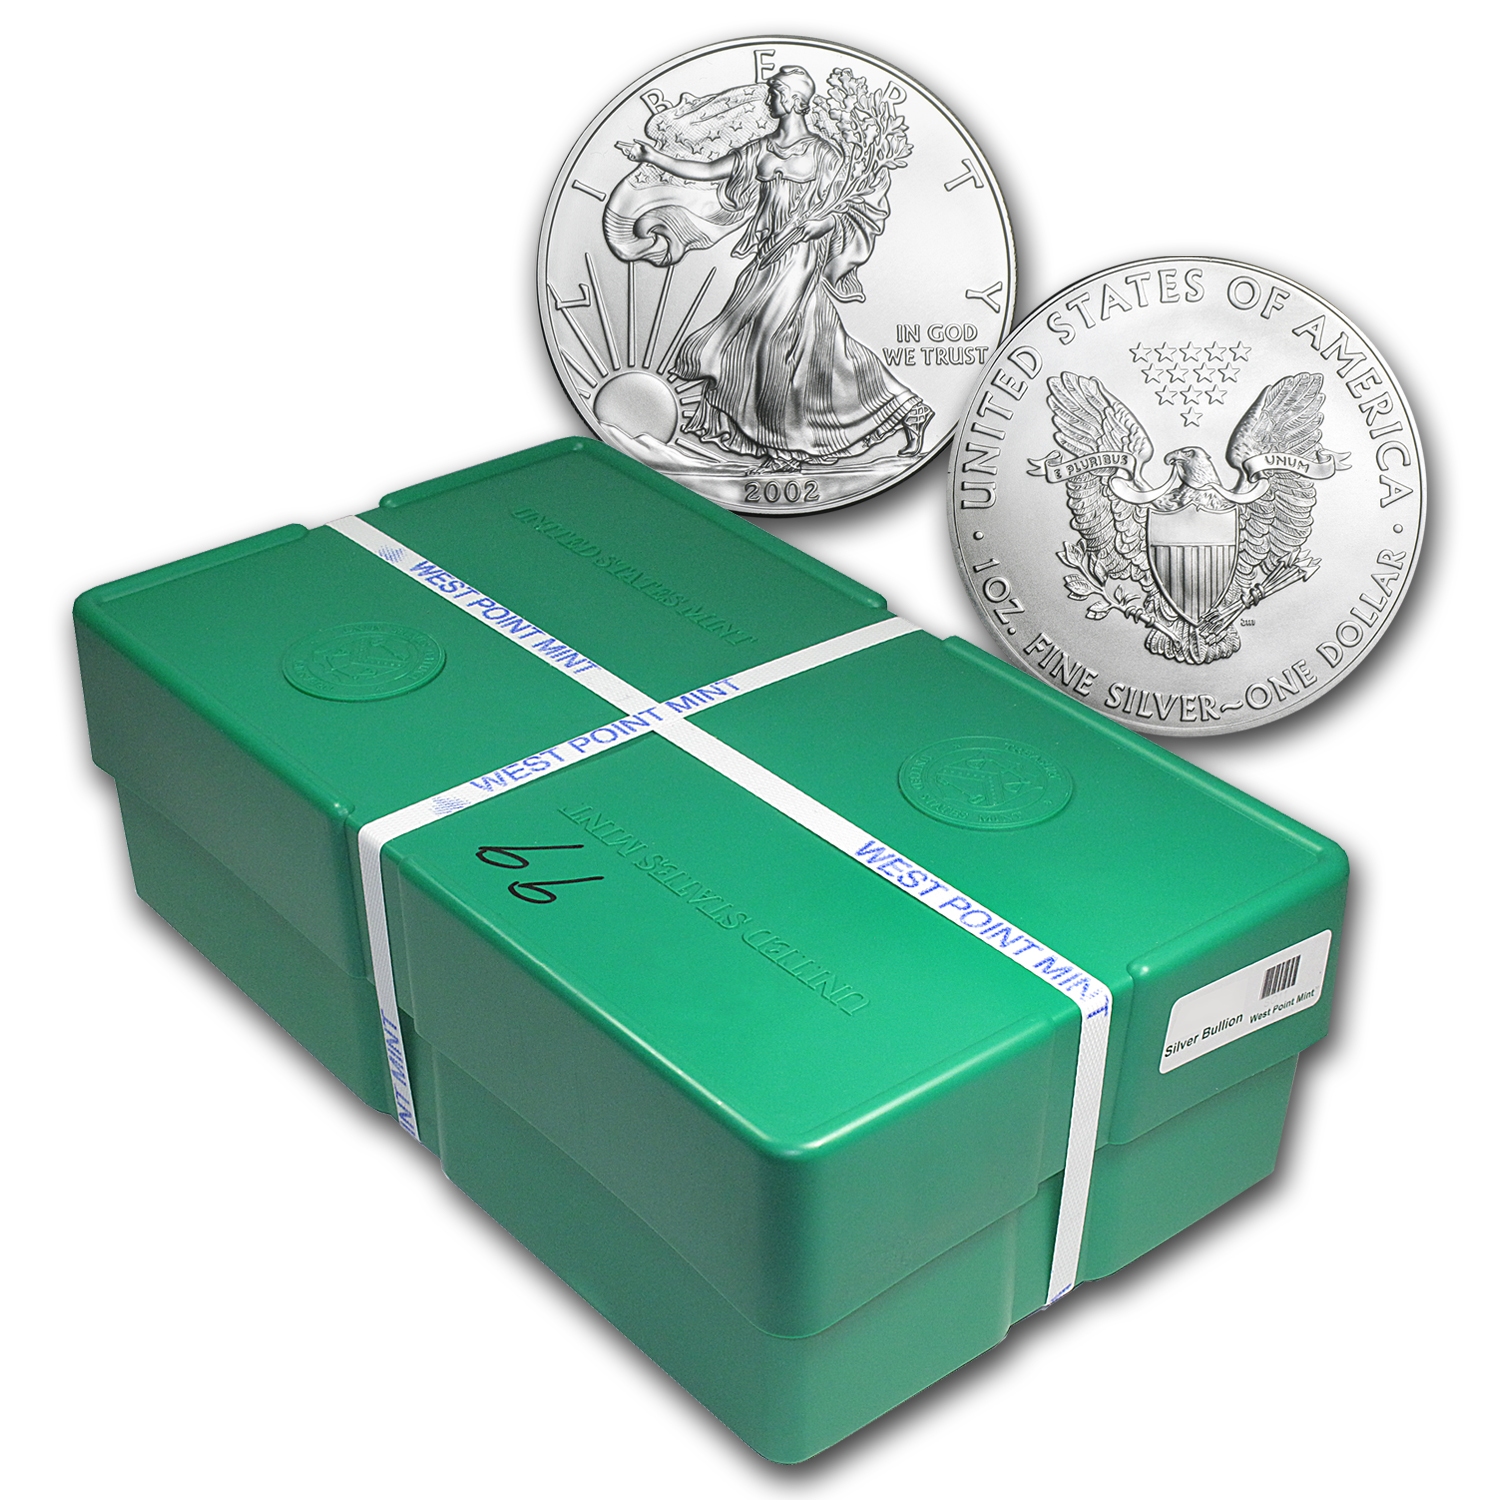 1 Oz Silver American Eagle Monster Box 500 Coins